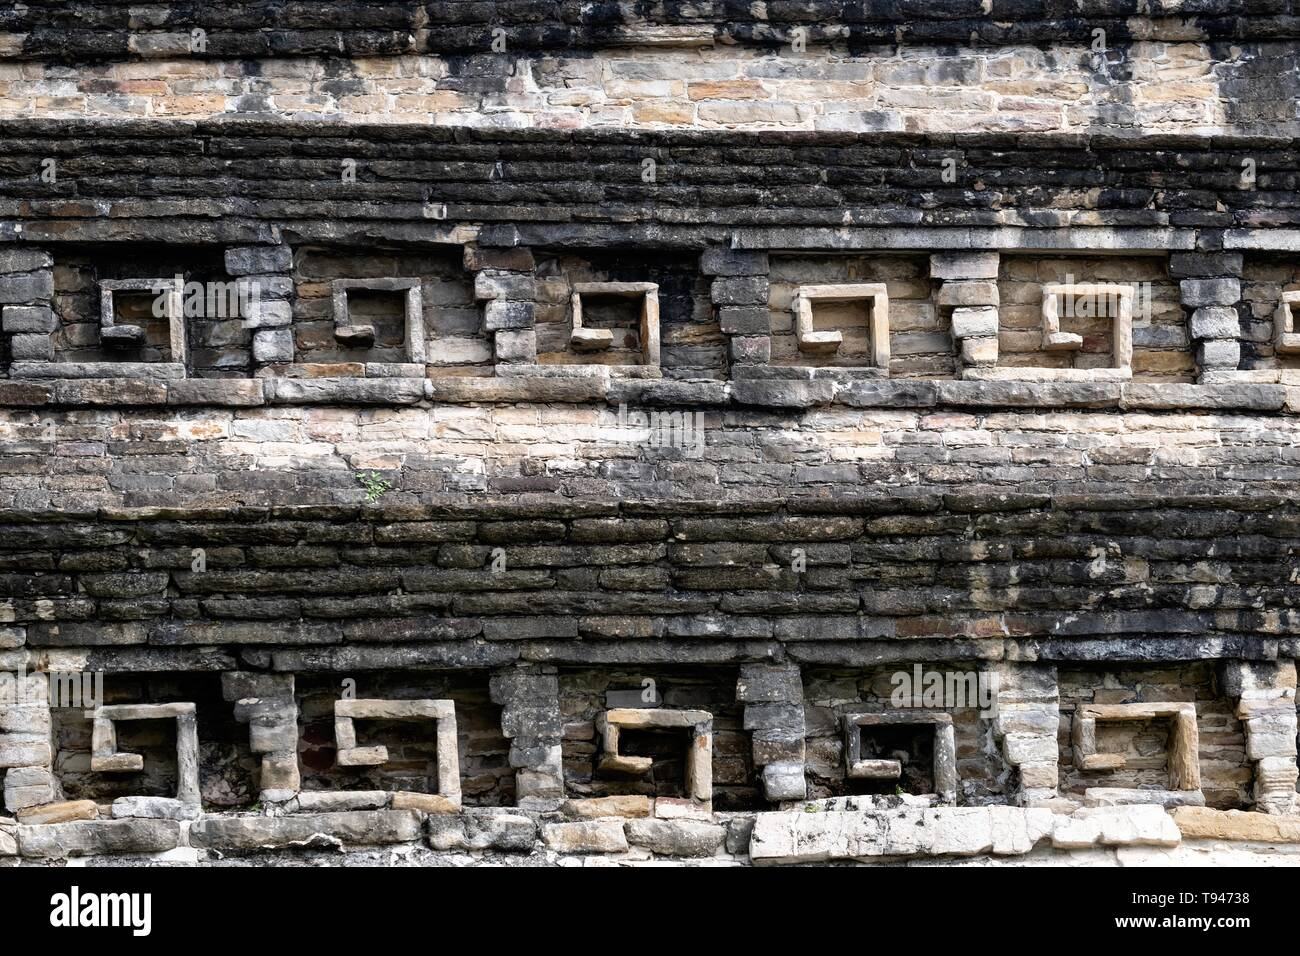 Details of decorated stone niches on Building C at the pre-Columbian archeological complex of El Tajin in Tajin, Veracruz, Mexico. El Tajín flourished from 600 to 1200 CE and during this time numerous temples, palaces, ballcourts, and pyramids were built by the Totonac people and is one of the largest and most important cities of the Classic era of Mesoamerica. - Stock Image